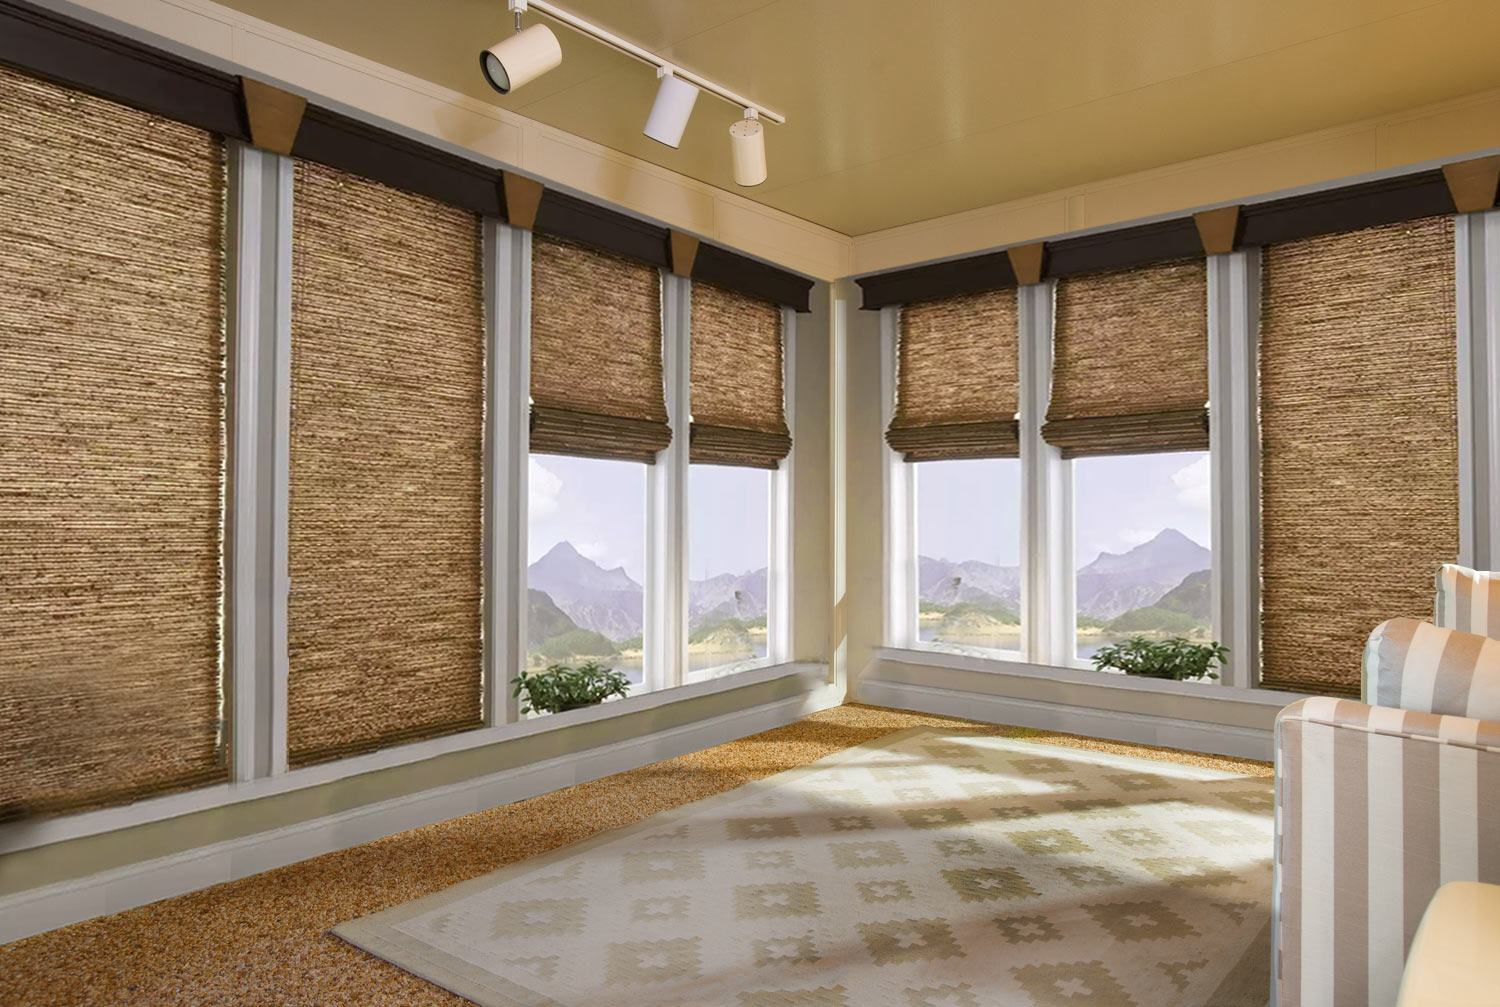 Four Season Sunroom Shades and Blinds  ZebraBlinds Canada